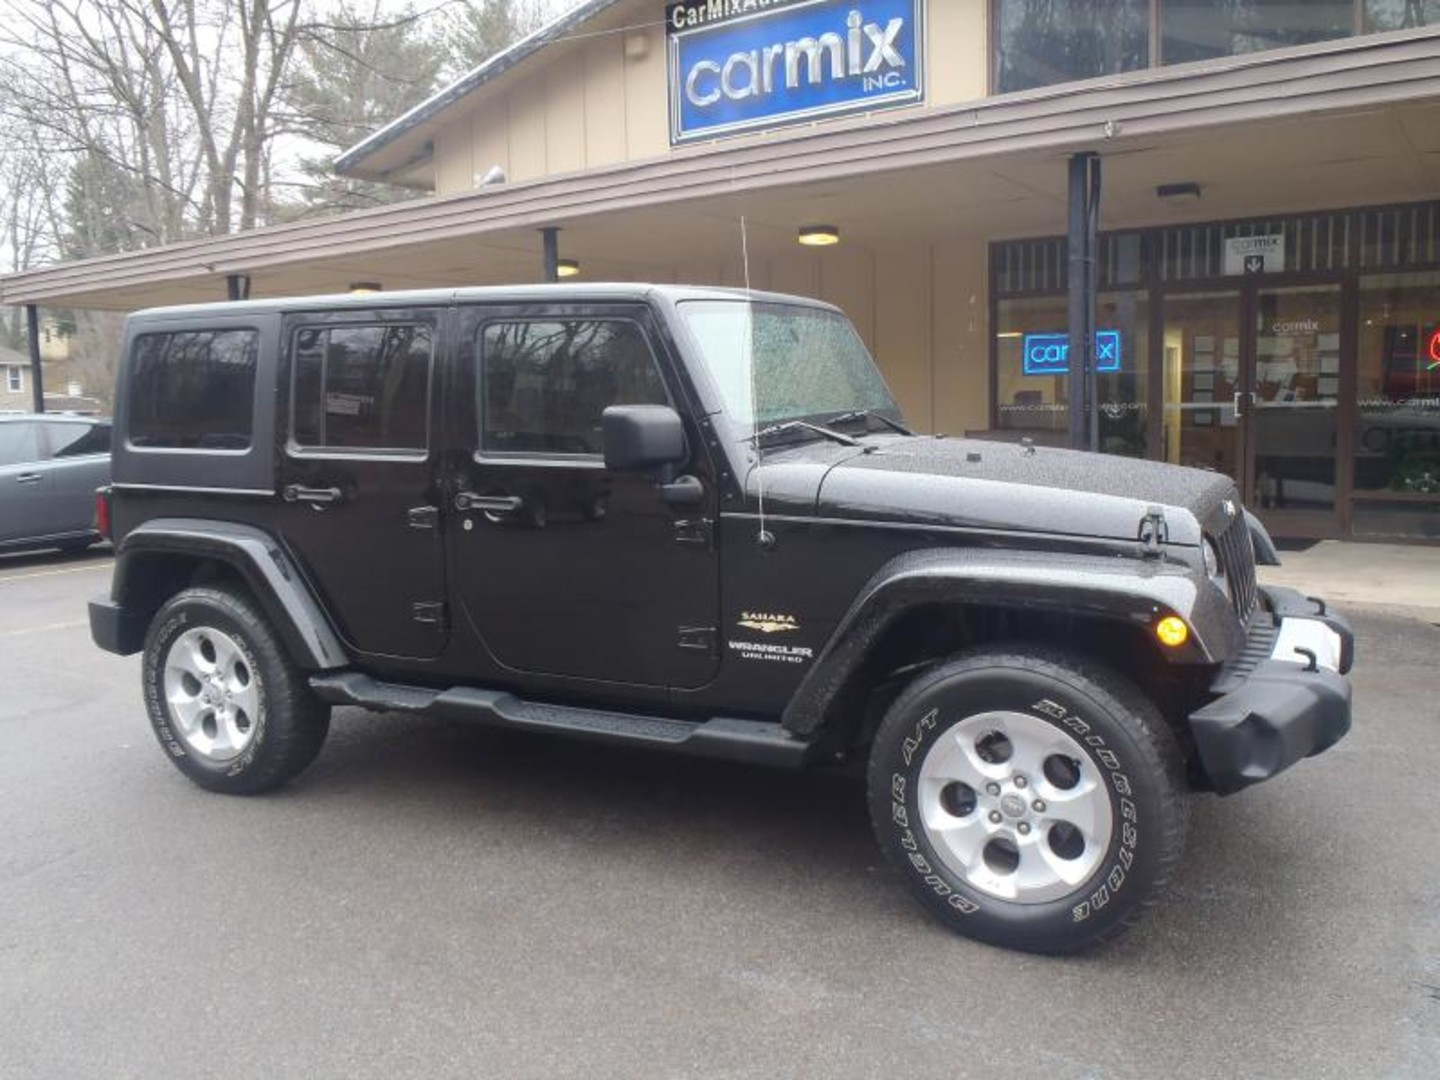 2014 jeep wrangler unlimited sahara city pa carmix auto sales. Black Bedroom Furniture Sets. Home Design Ideas